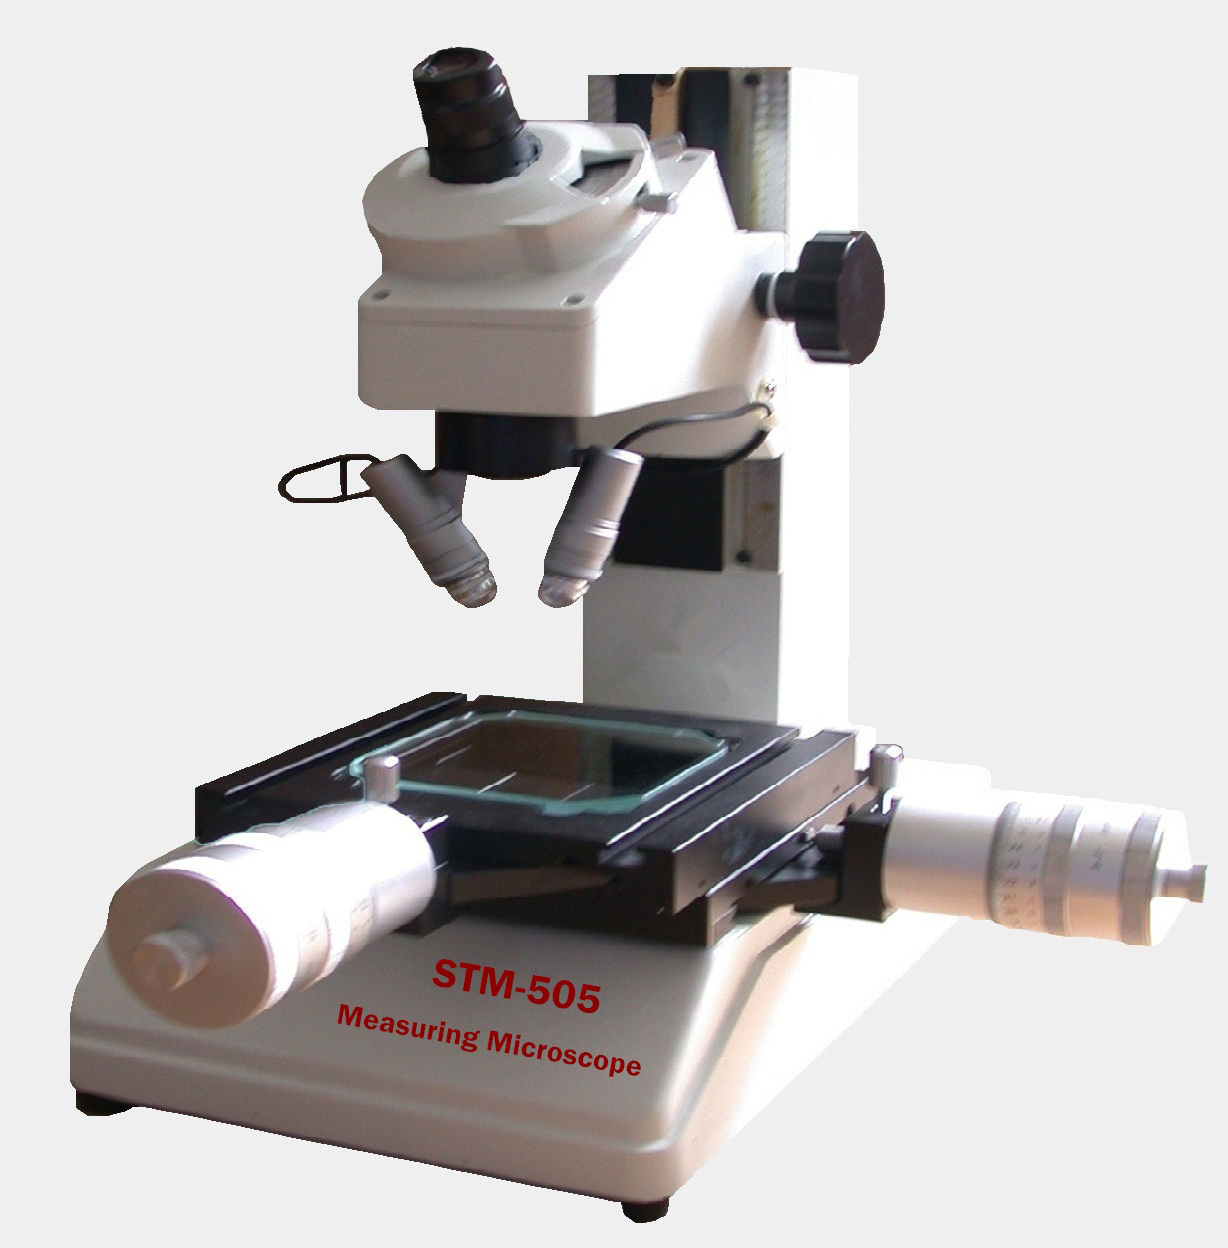 Tool-Maker��s Microscopes STM-505